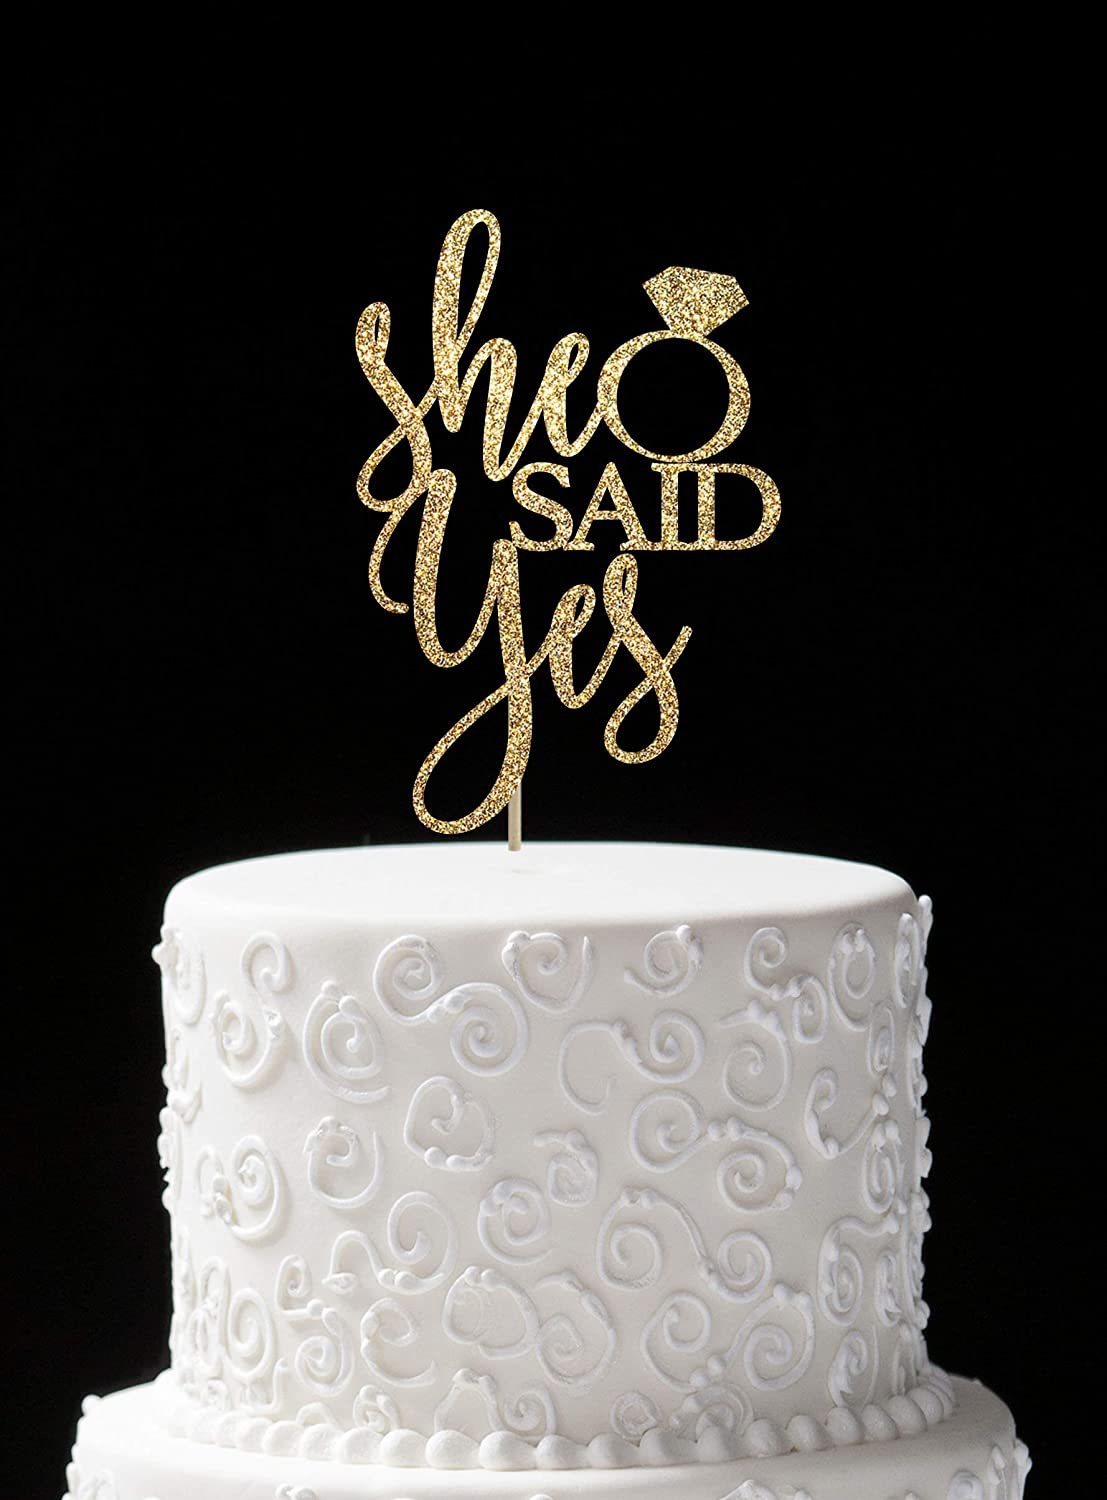 hen party Future Mrs cake topper with the last name Bridal shower cake topper. diamond ring cake topper Personalised engagement party